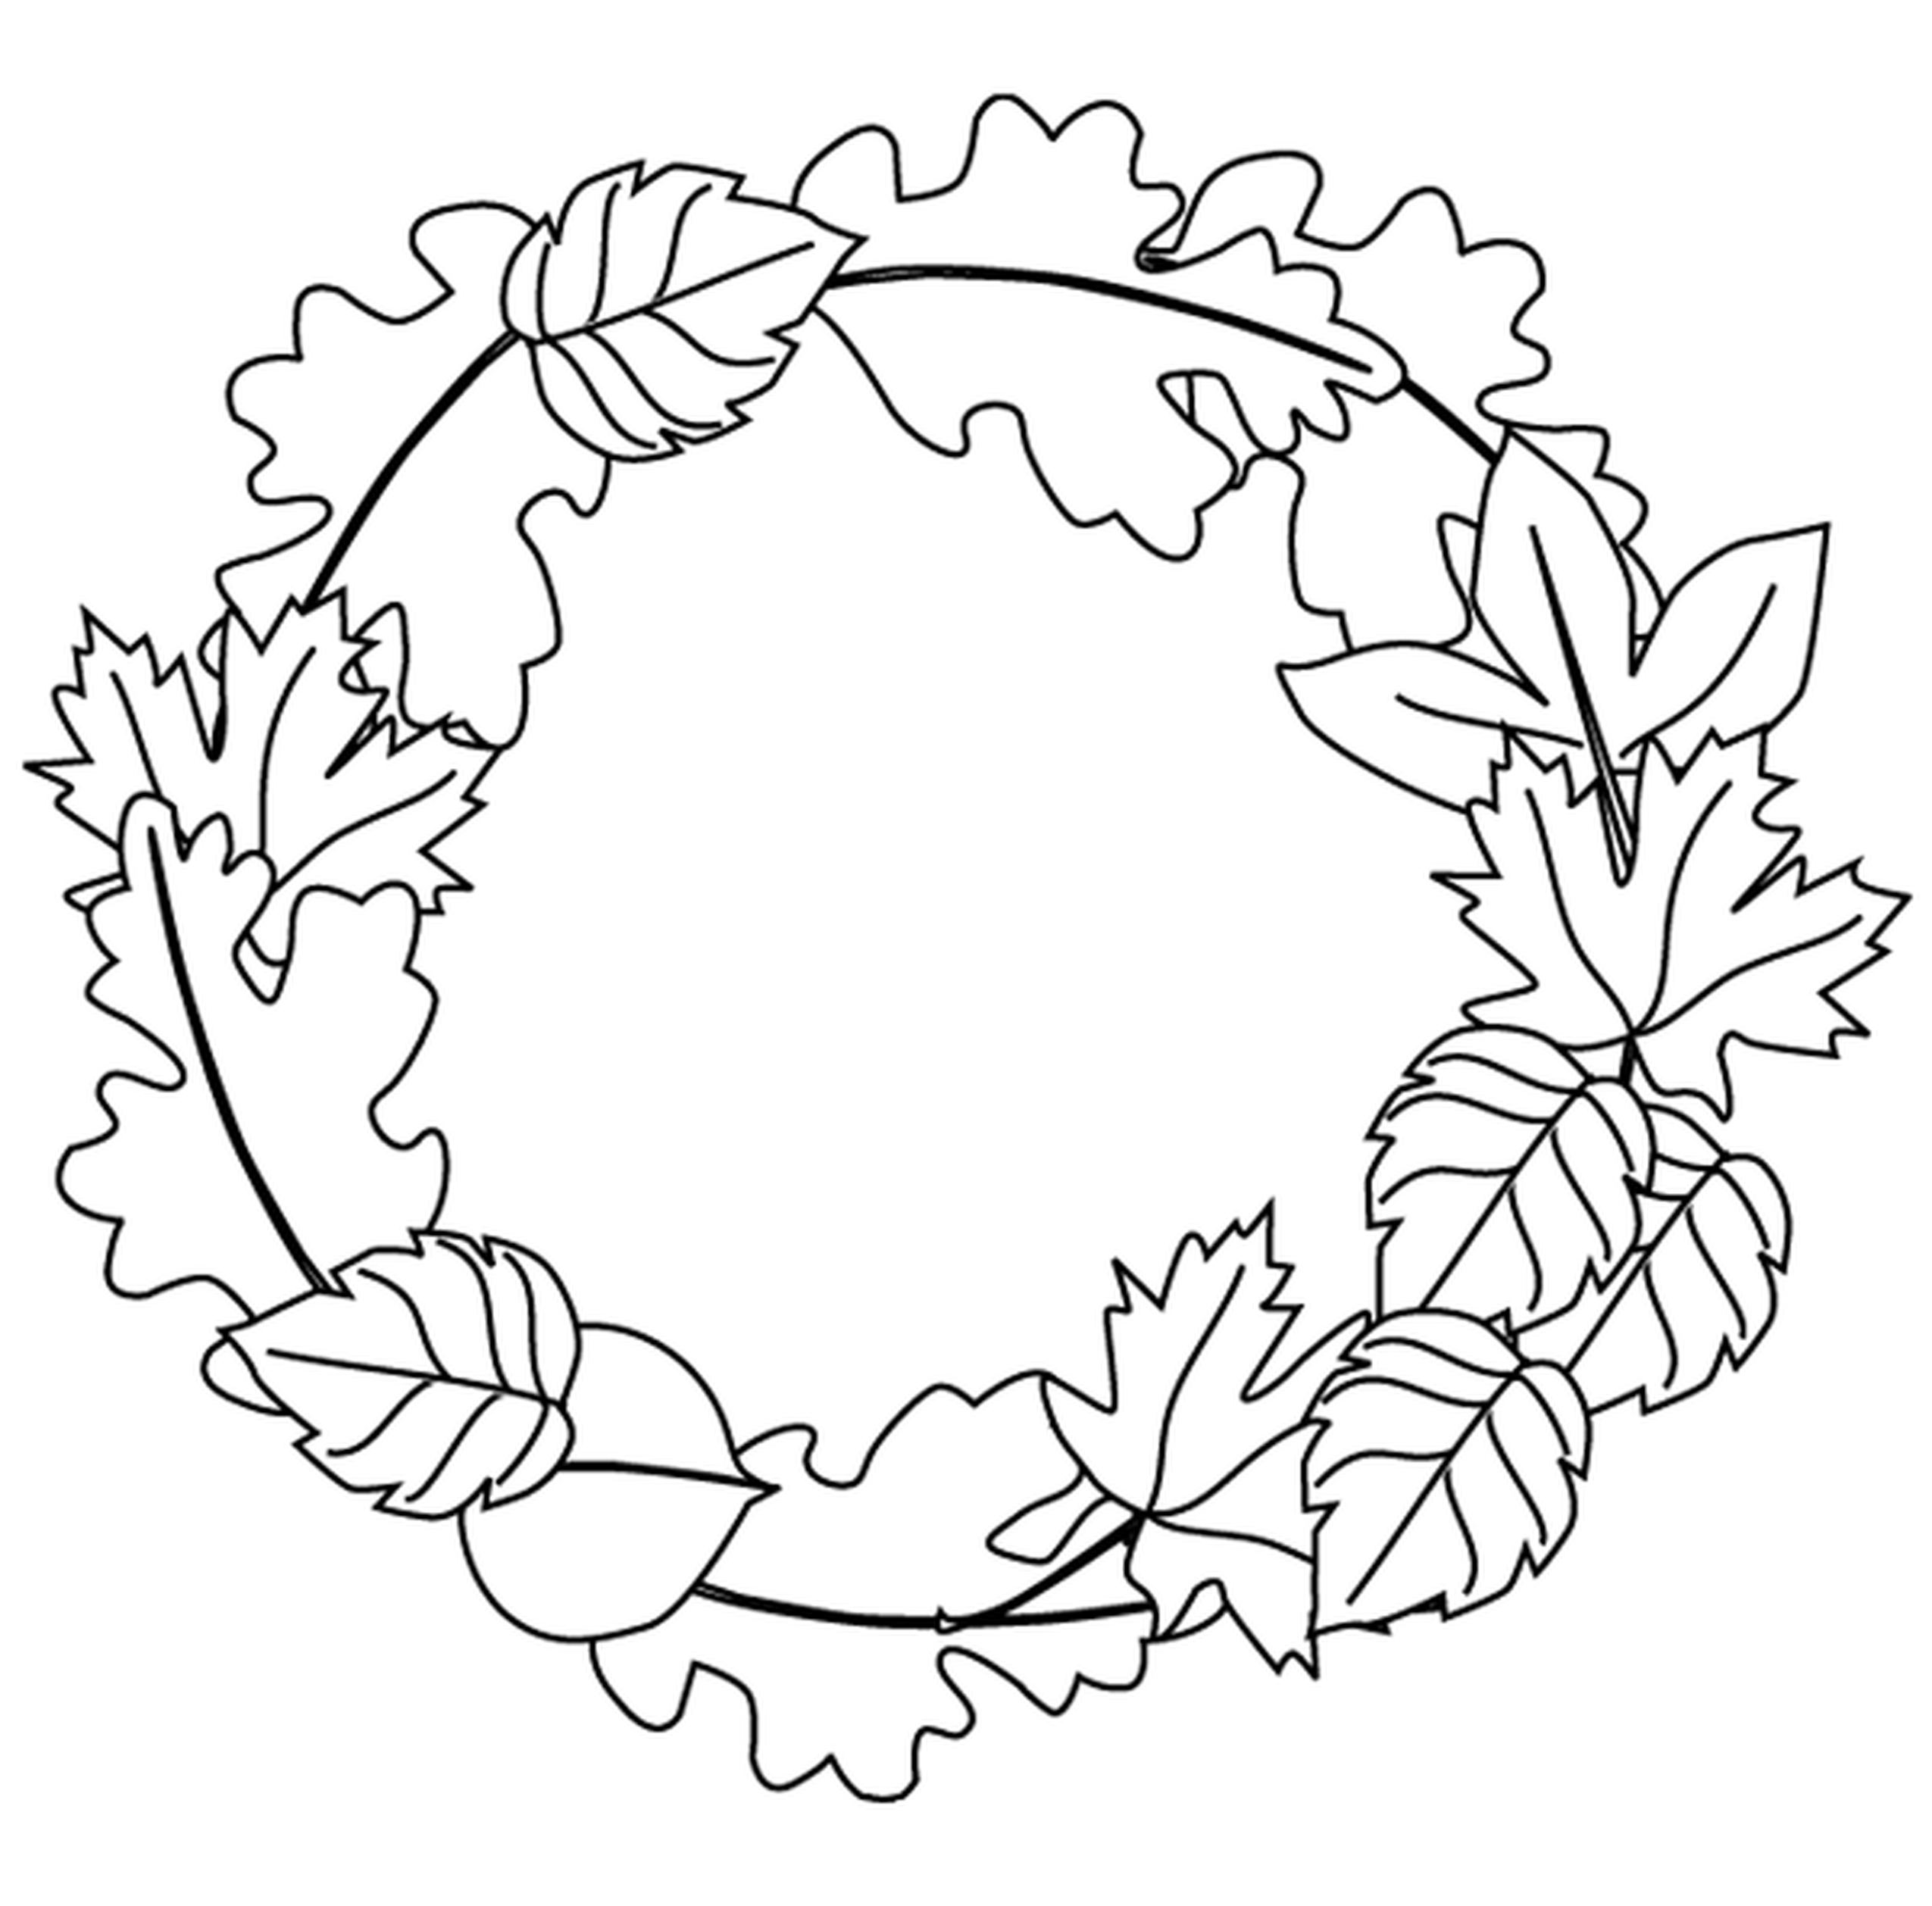 2550x2516 Nice Leaf Coloring Pages For Preschool Gallery Design Ideas